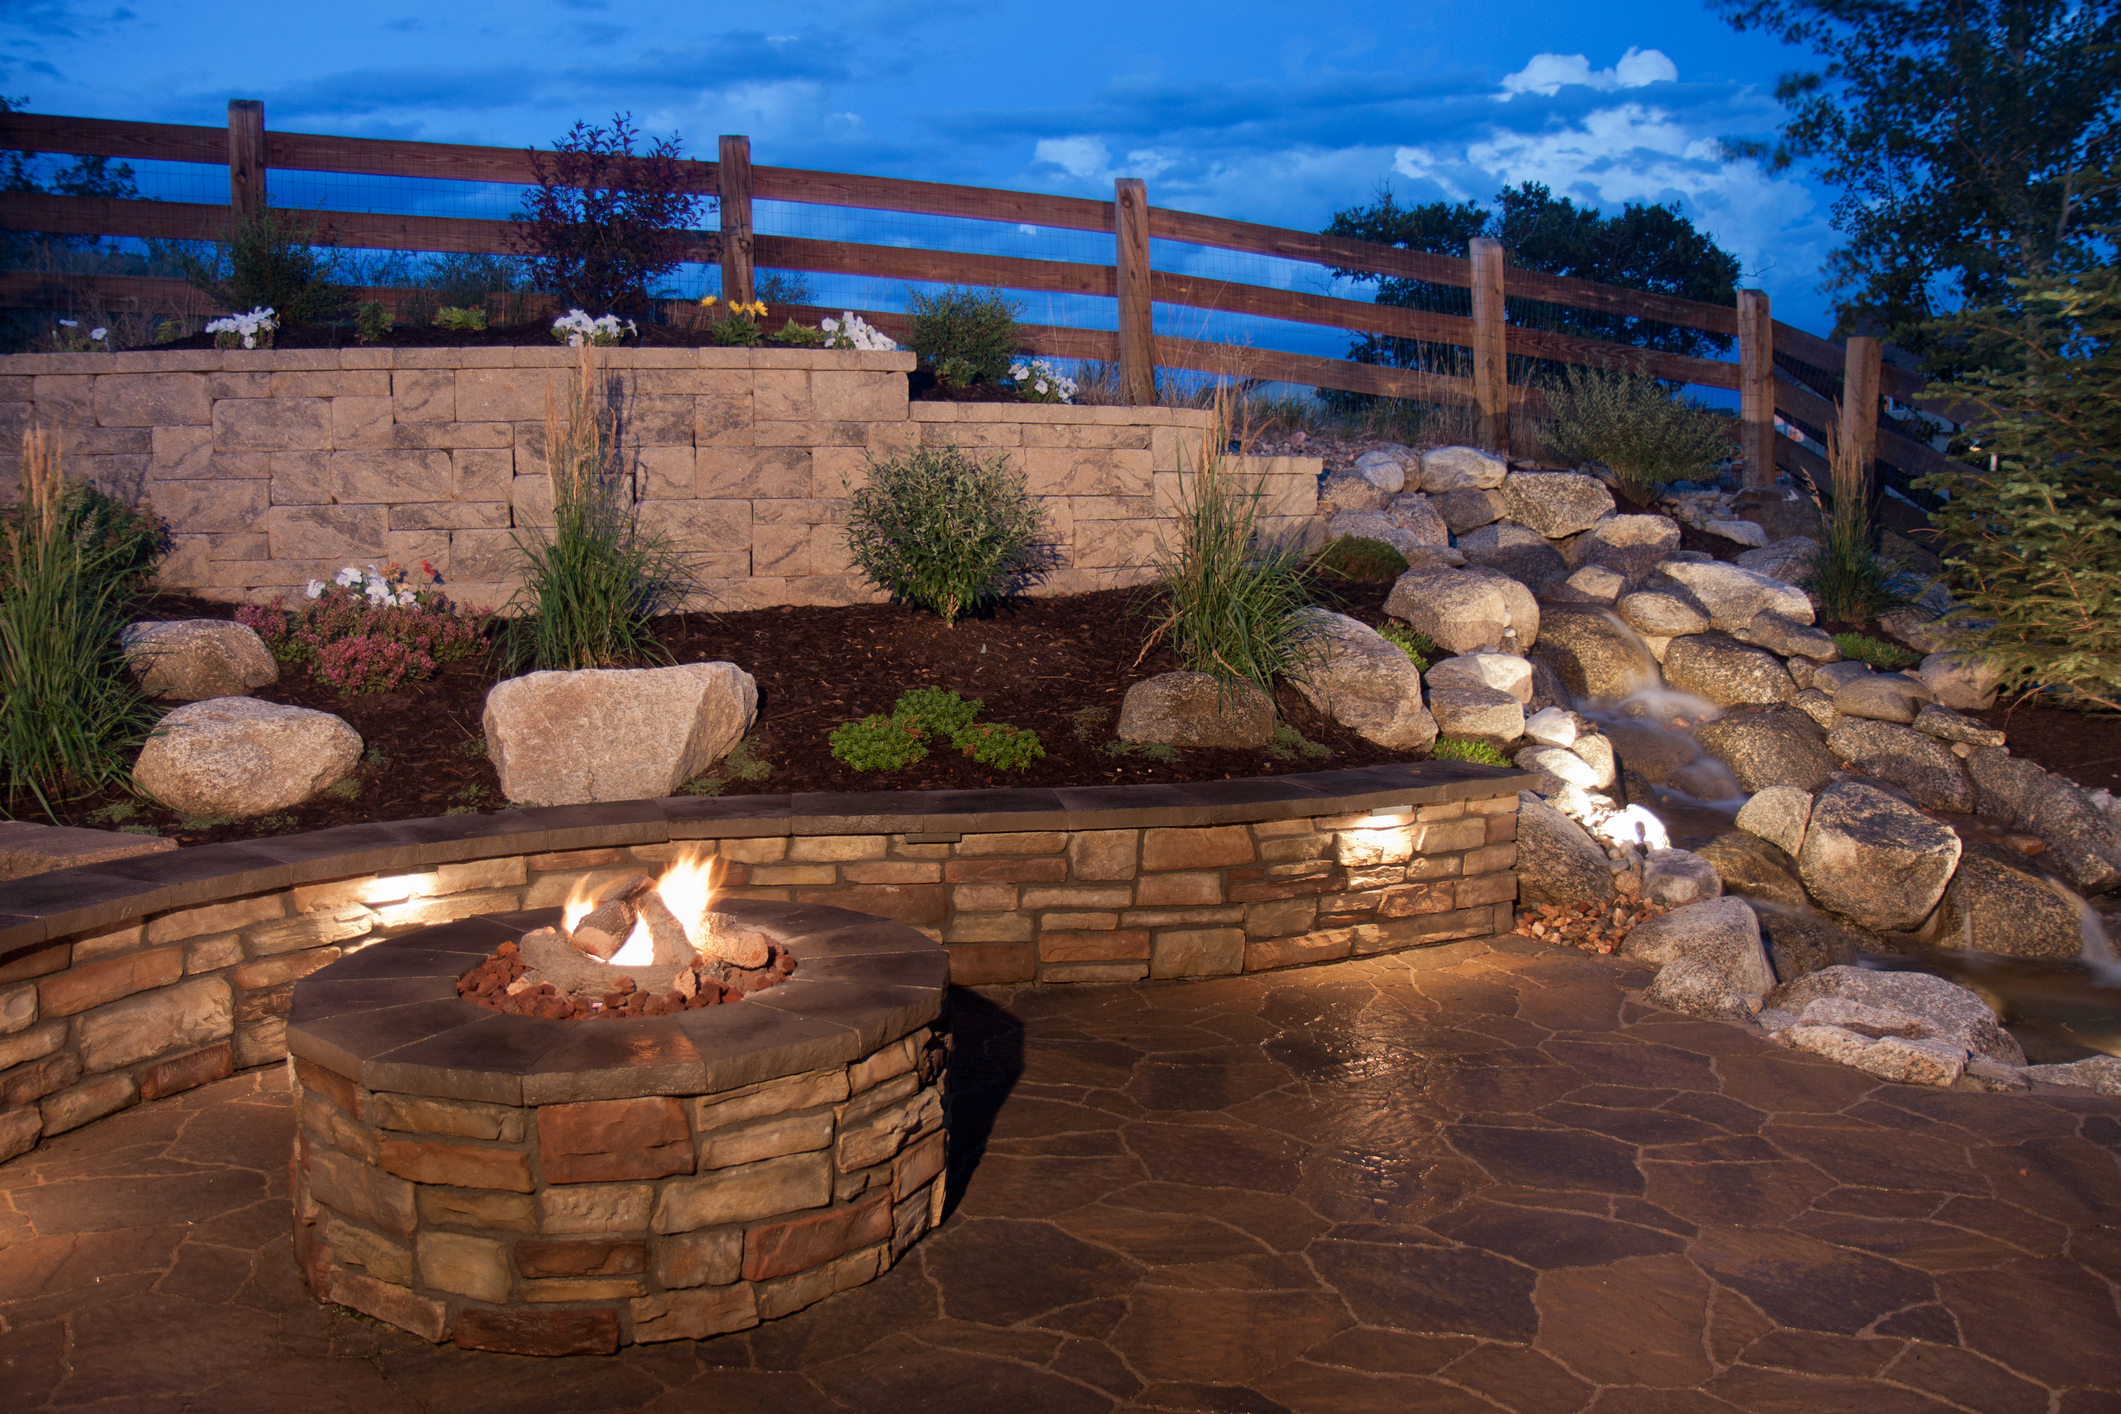 Outdoor Living Spaces Add Value to Your Home